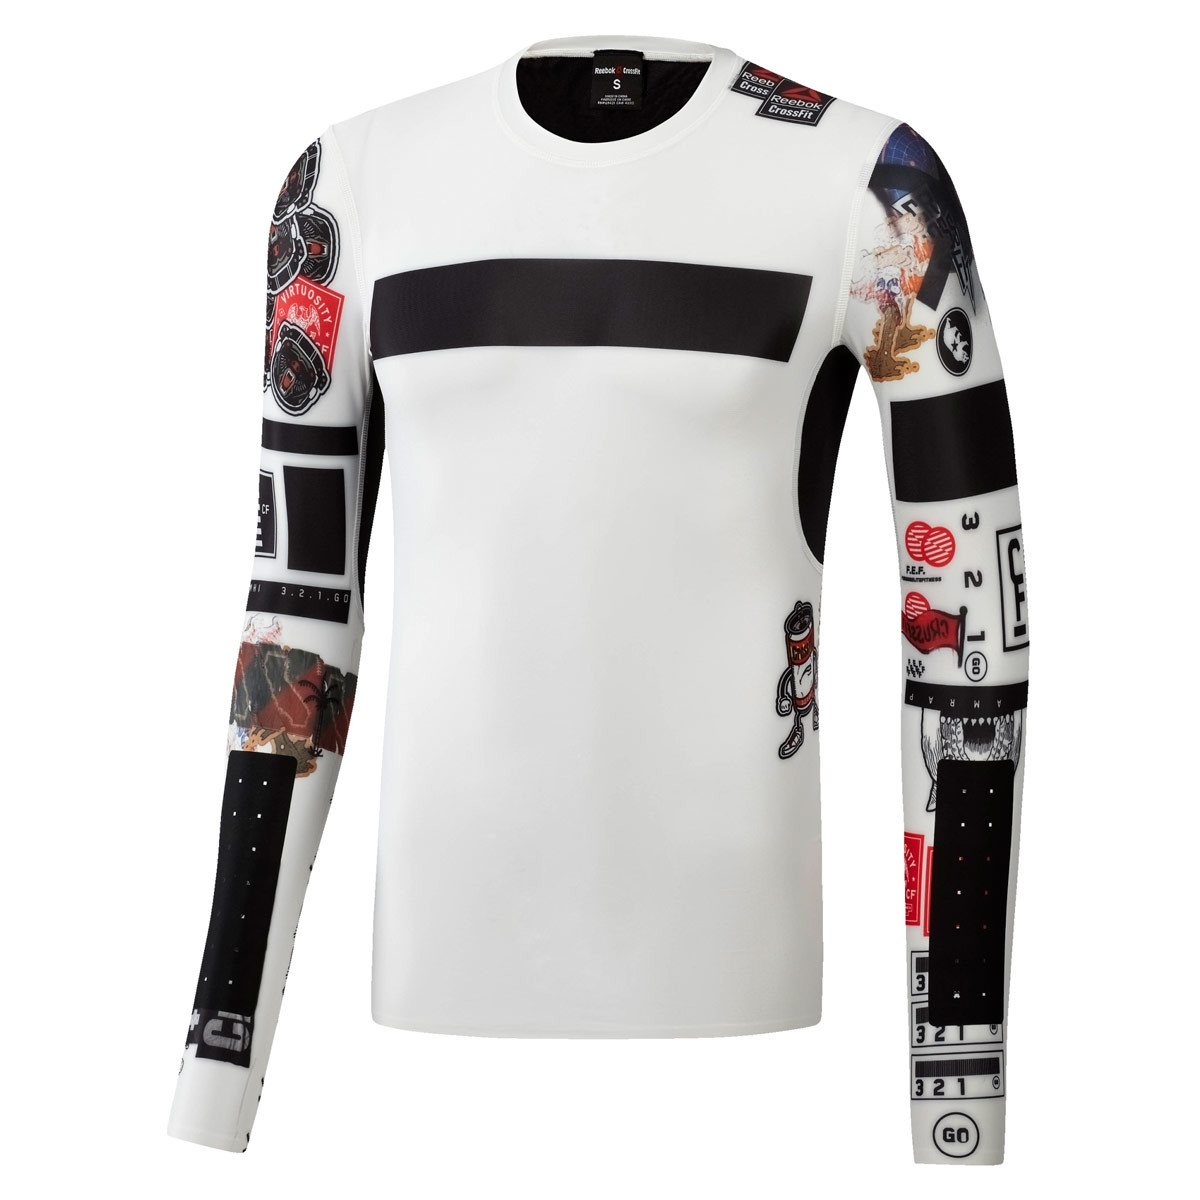 266e5ebabaaf Reebok Crossfit Compression Long Sleeve Shirt - Fitness tops for Men -  White